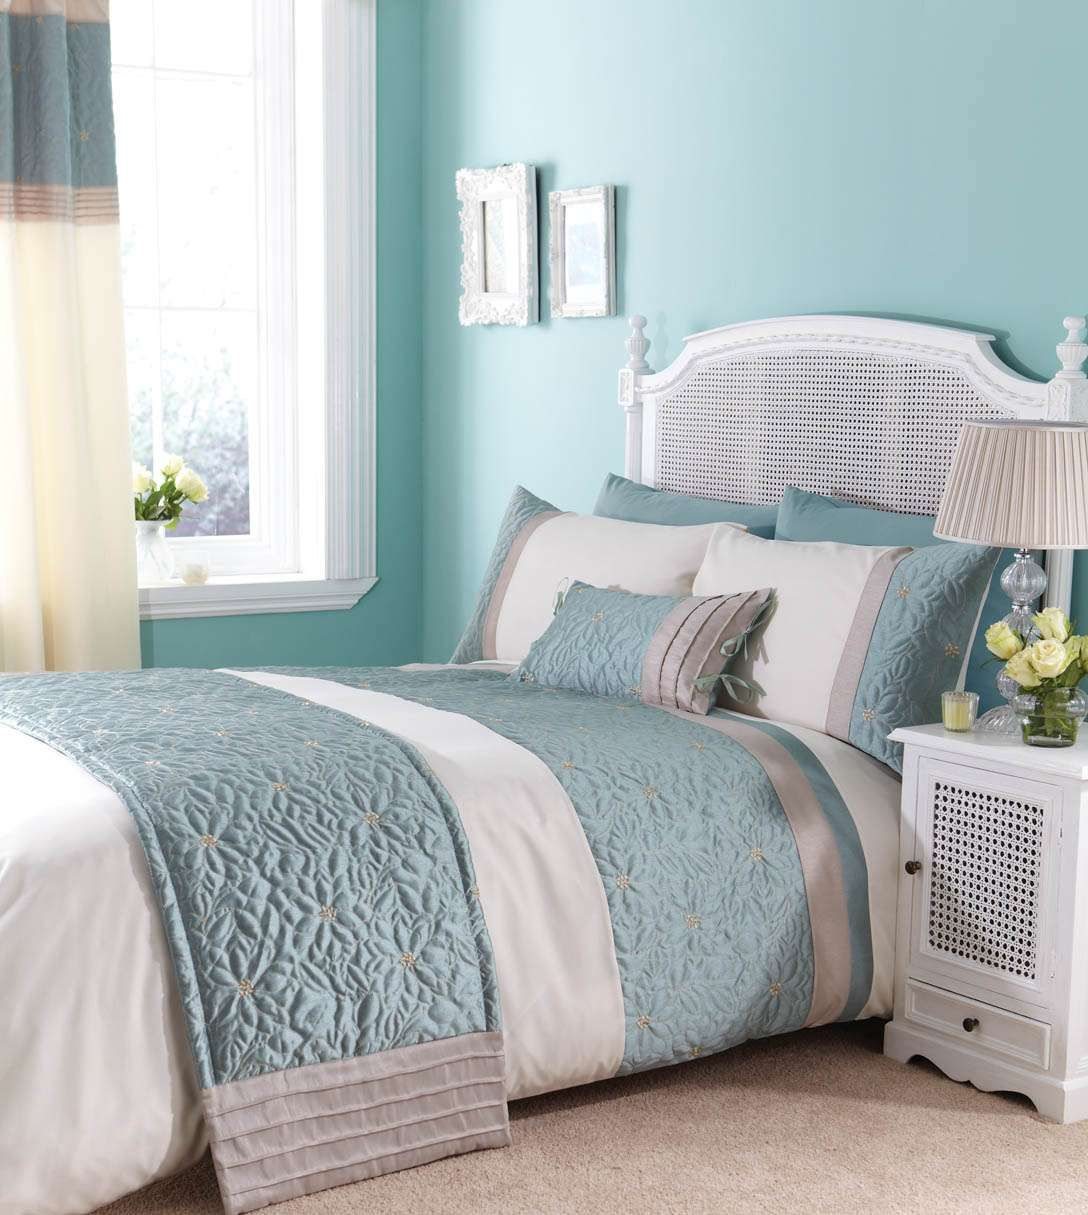 duck egg blue! love the big window, bedding and bedside cabinet